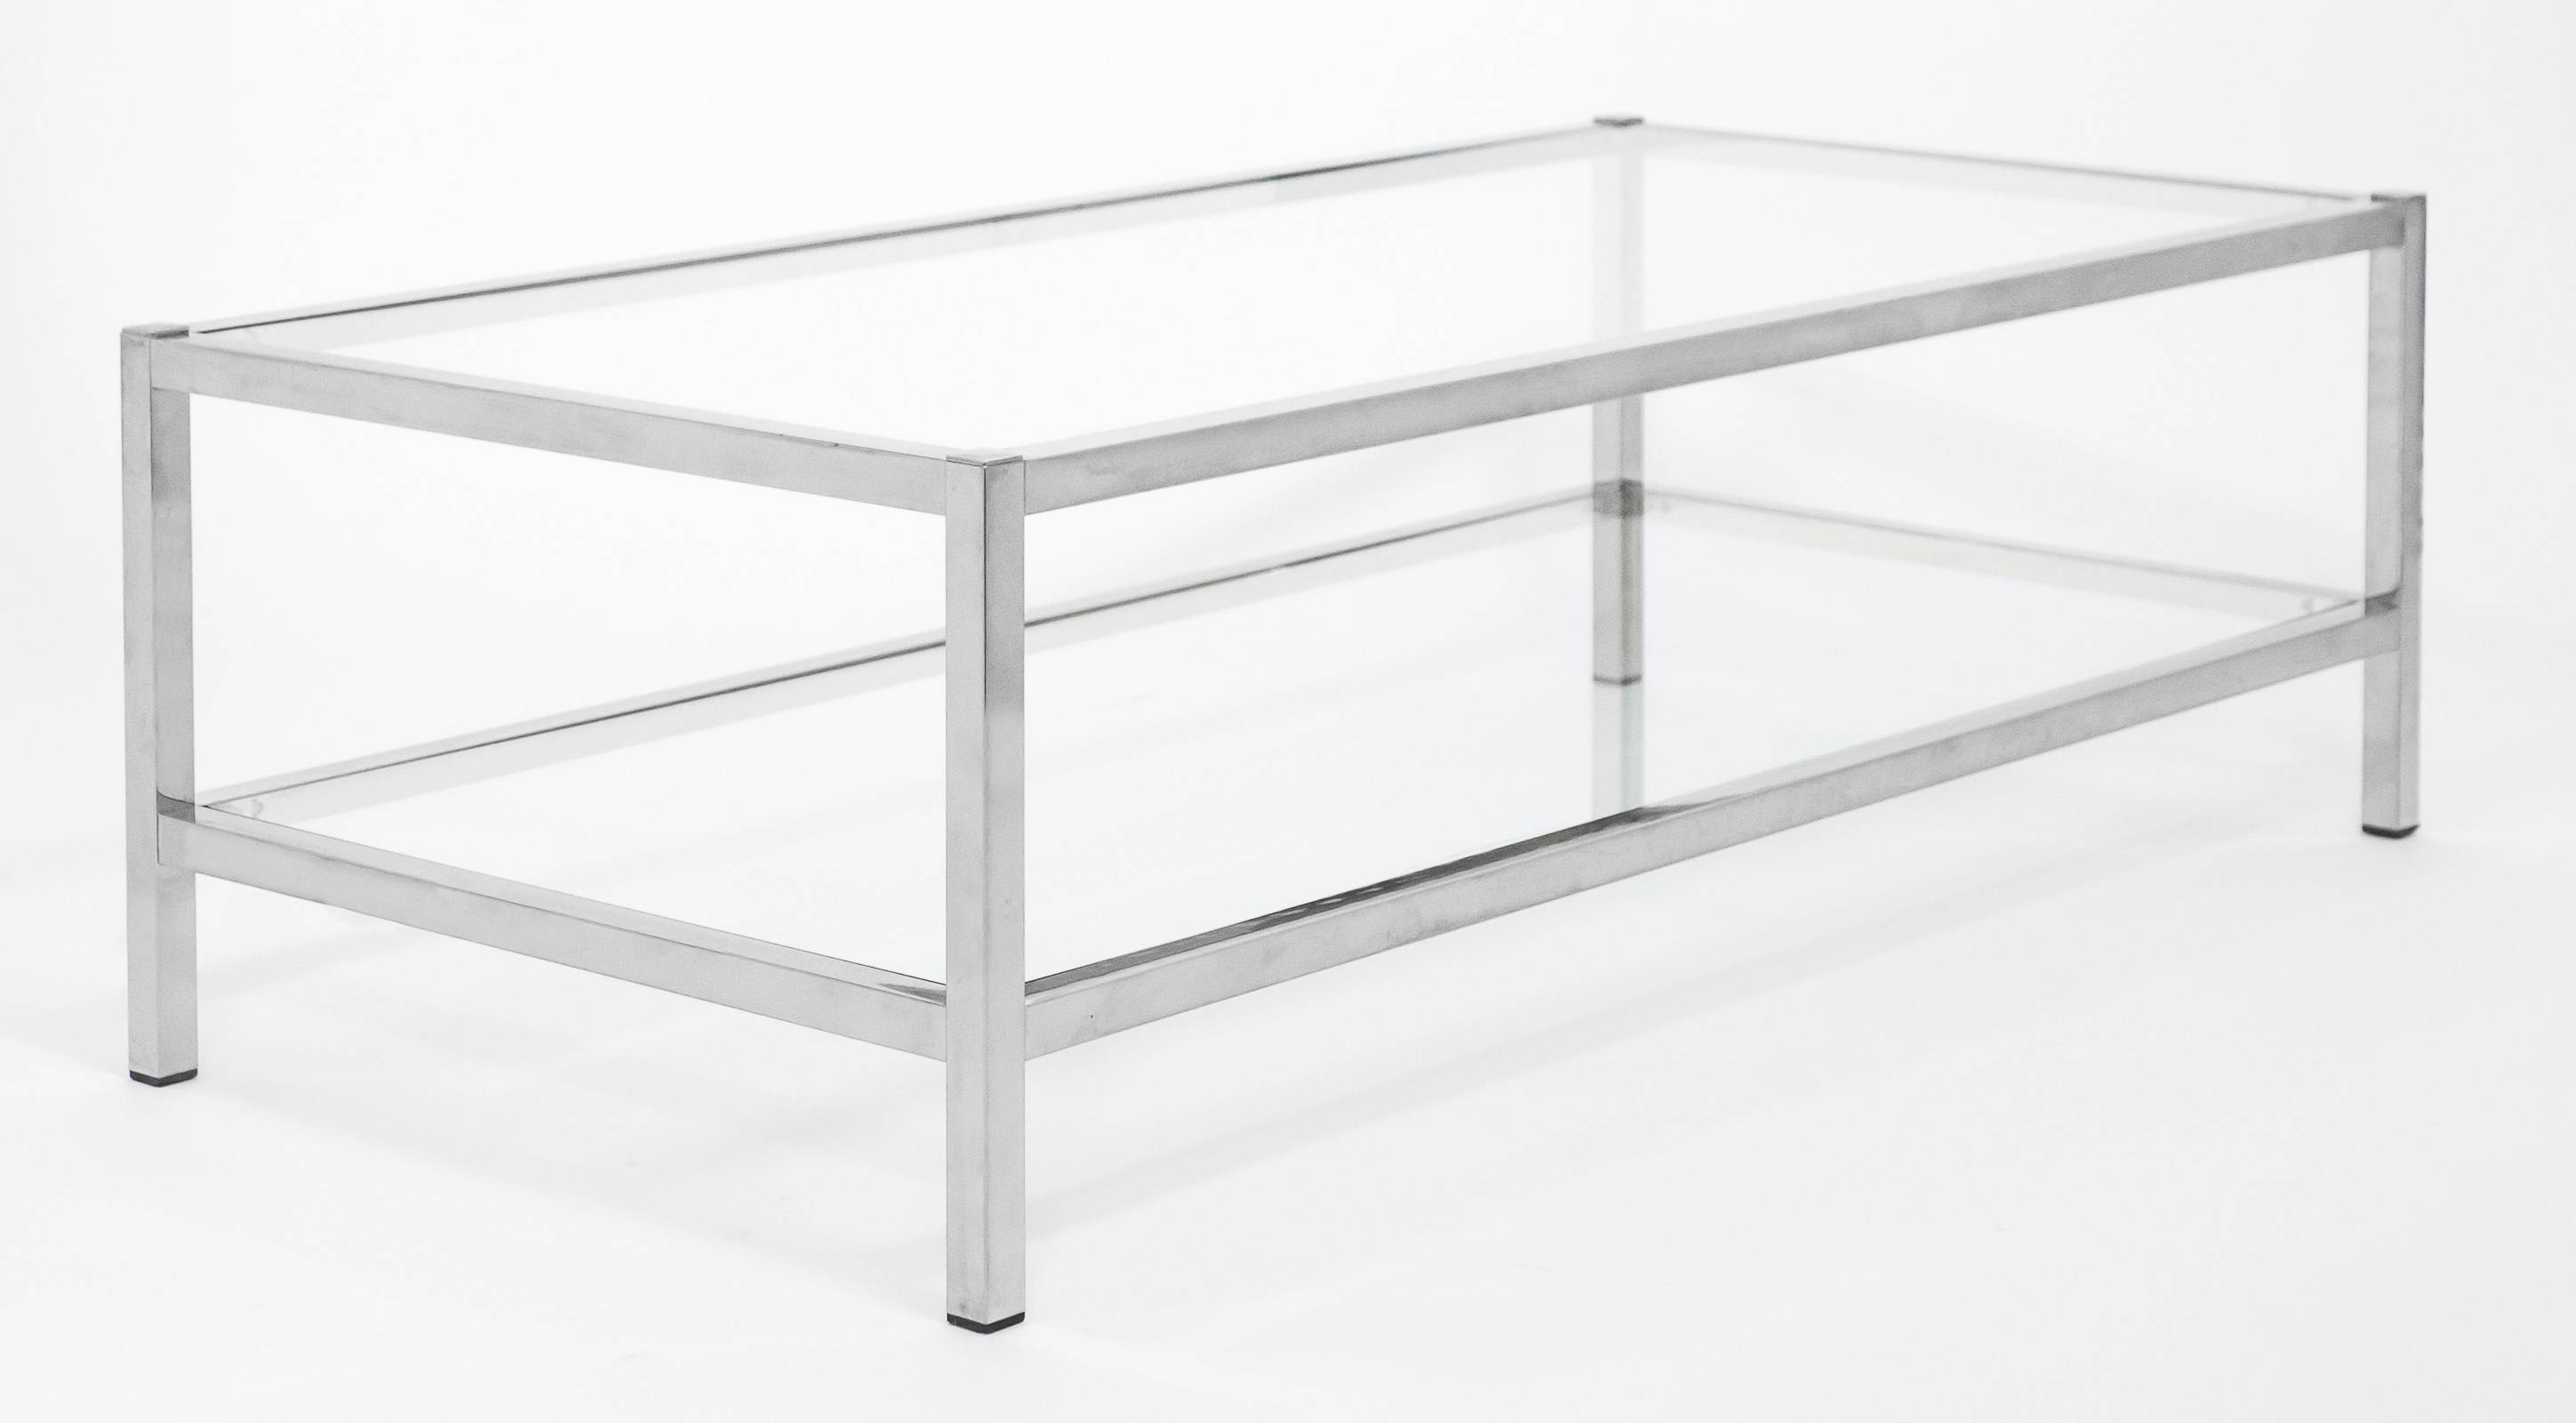 French Vintage Chrome And Glass Coffee Table - Jean Marc Fray in Glass And Chrome Coffee Tables (Image 11 of 30)